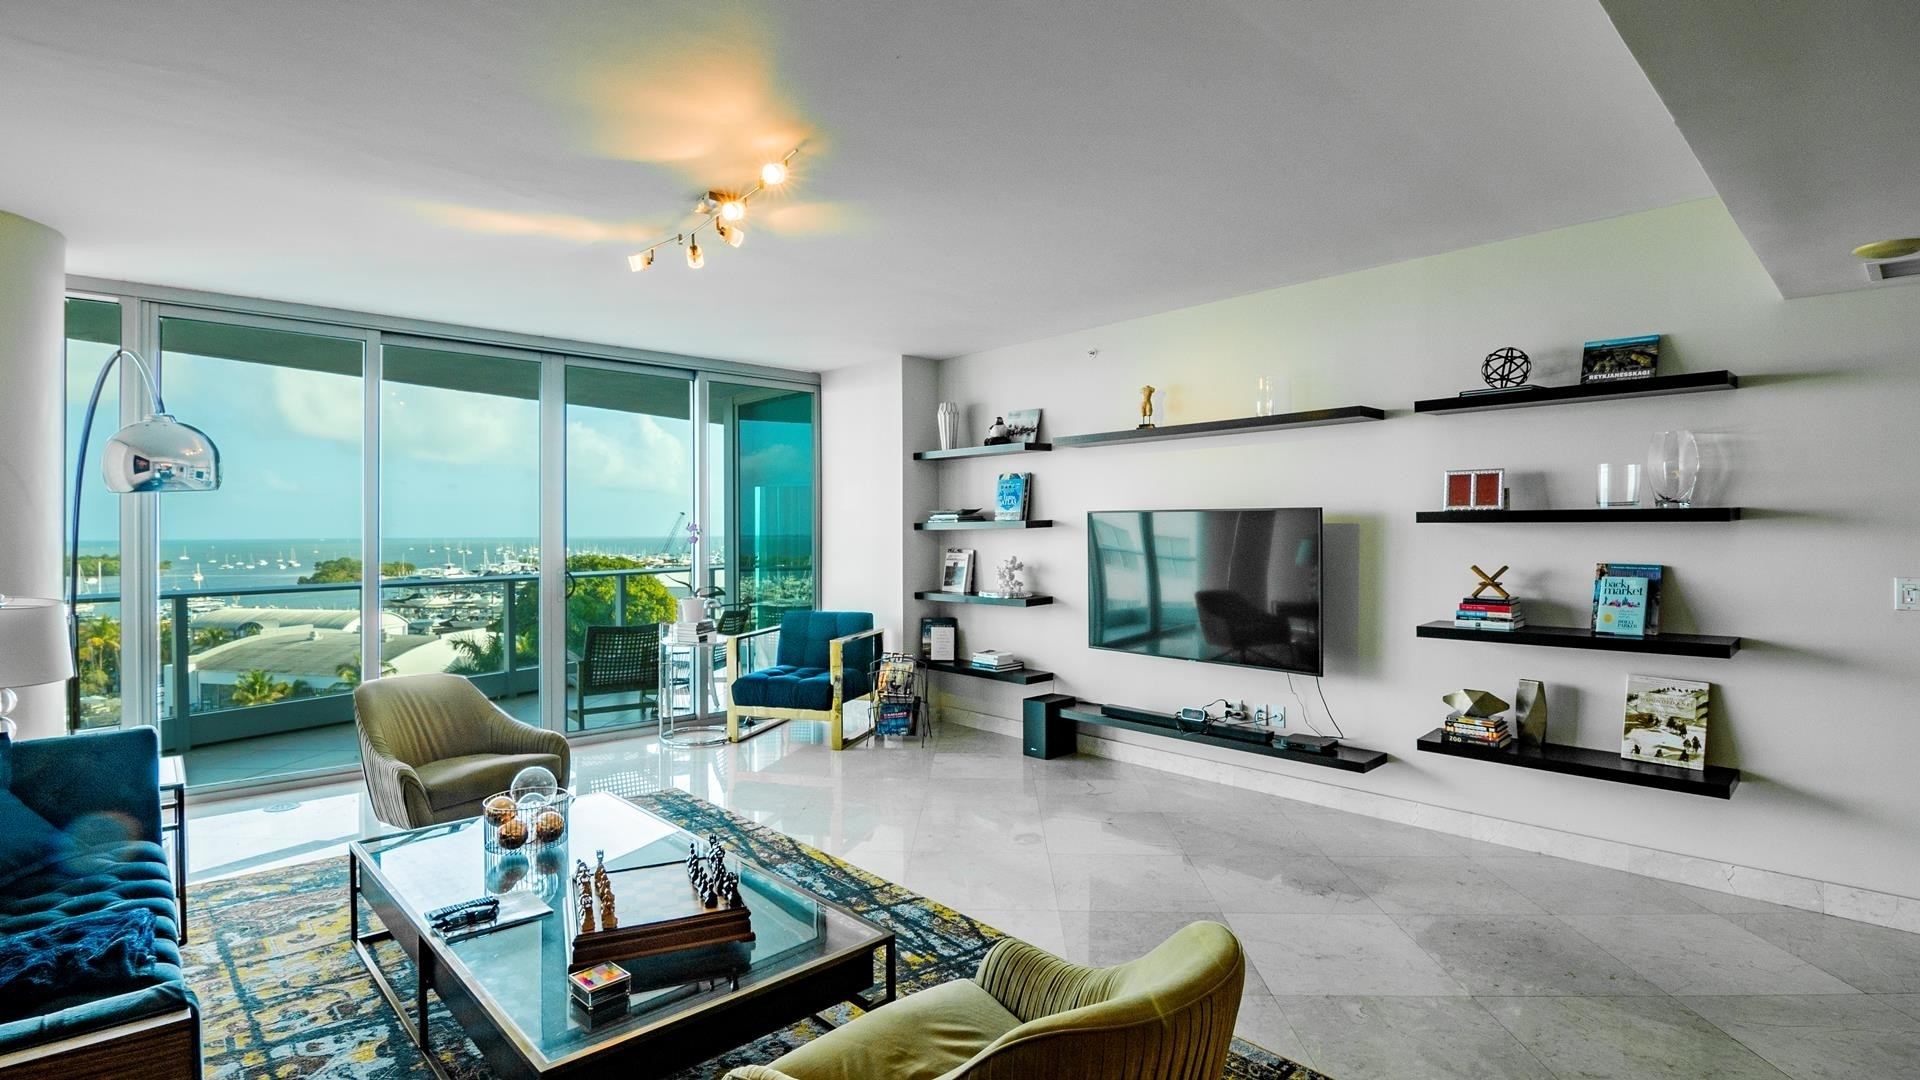 Property à 2627 S Bayshore Dr , 1001 Northeast Coconut Grove, Miami, FL 33133